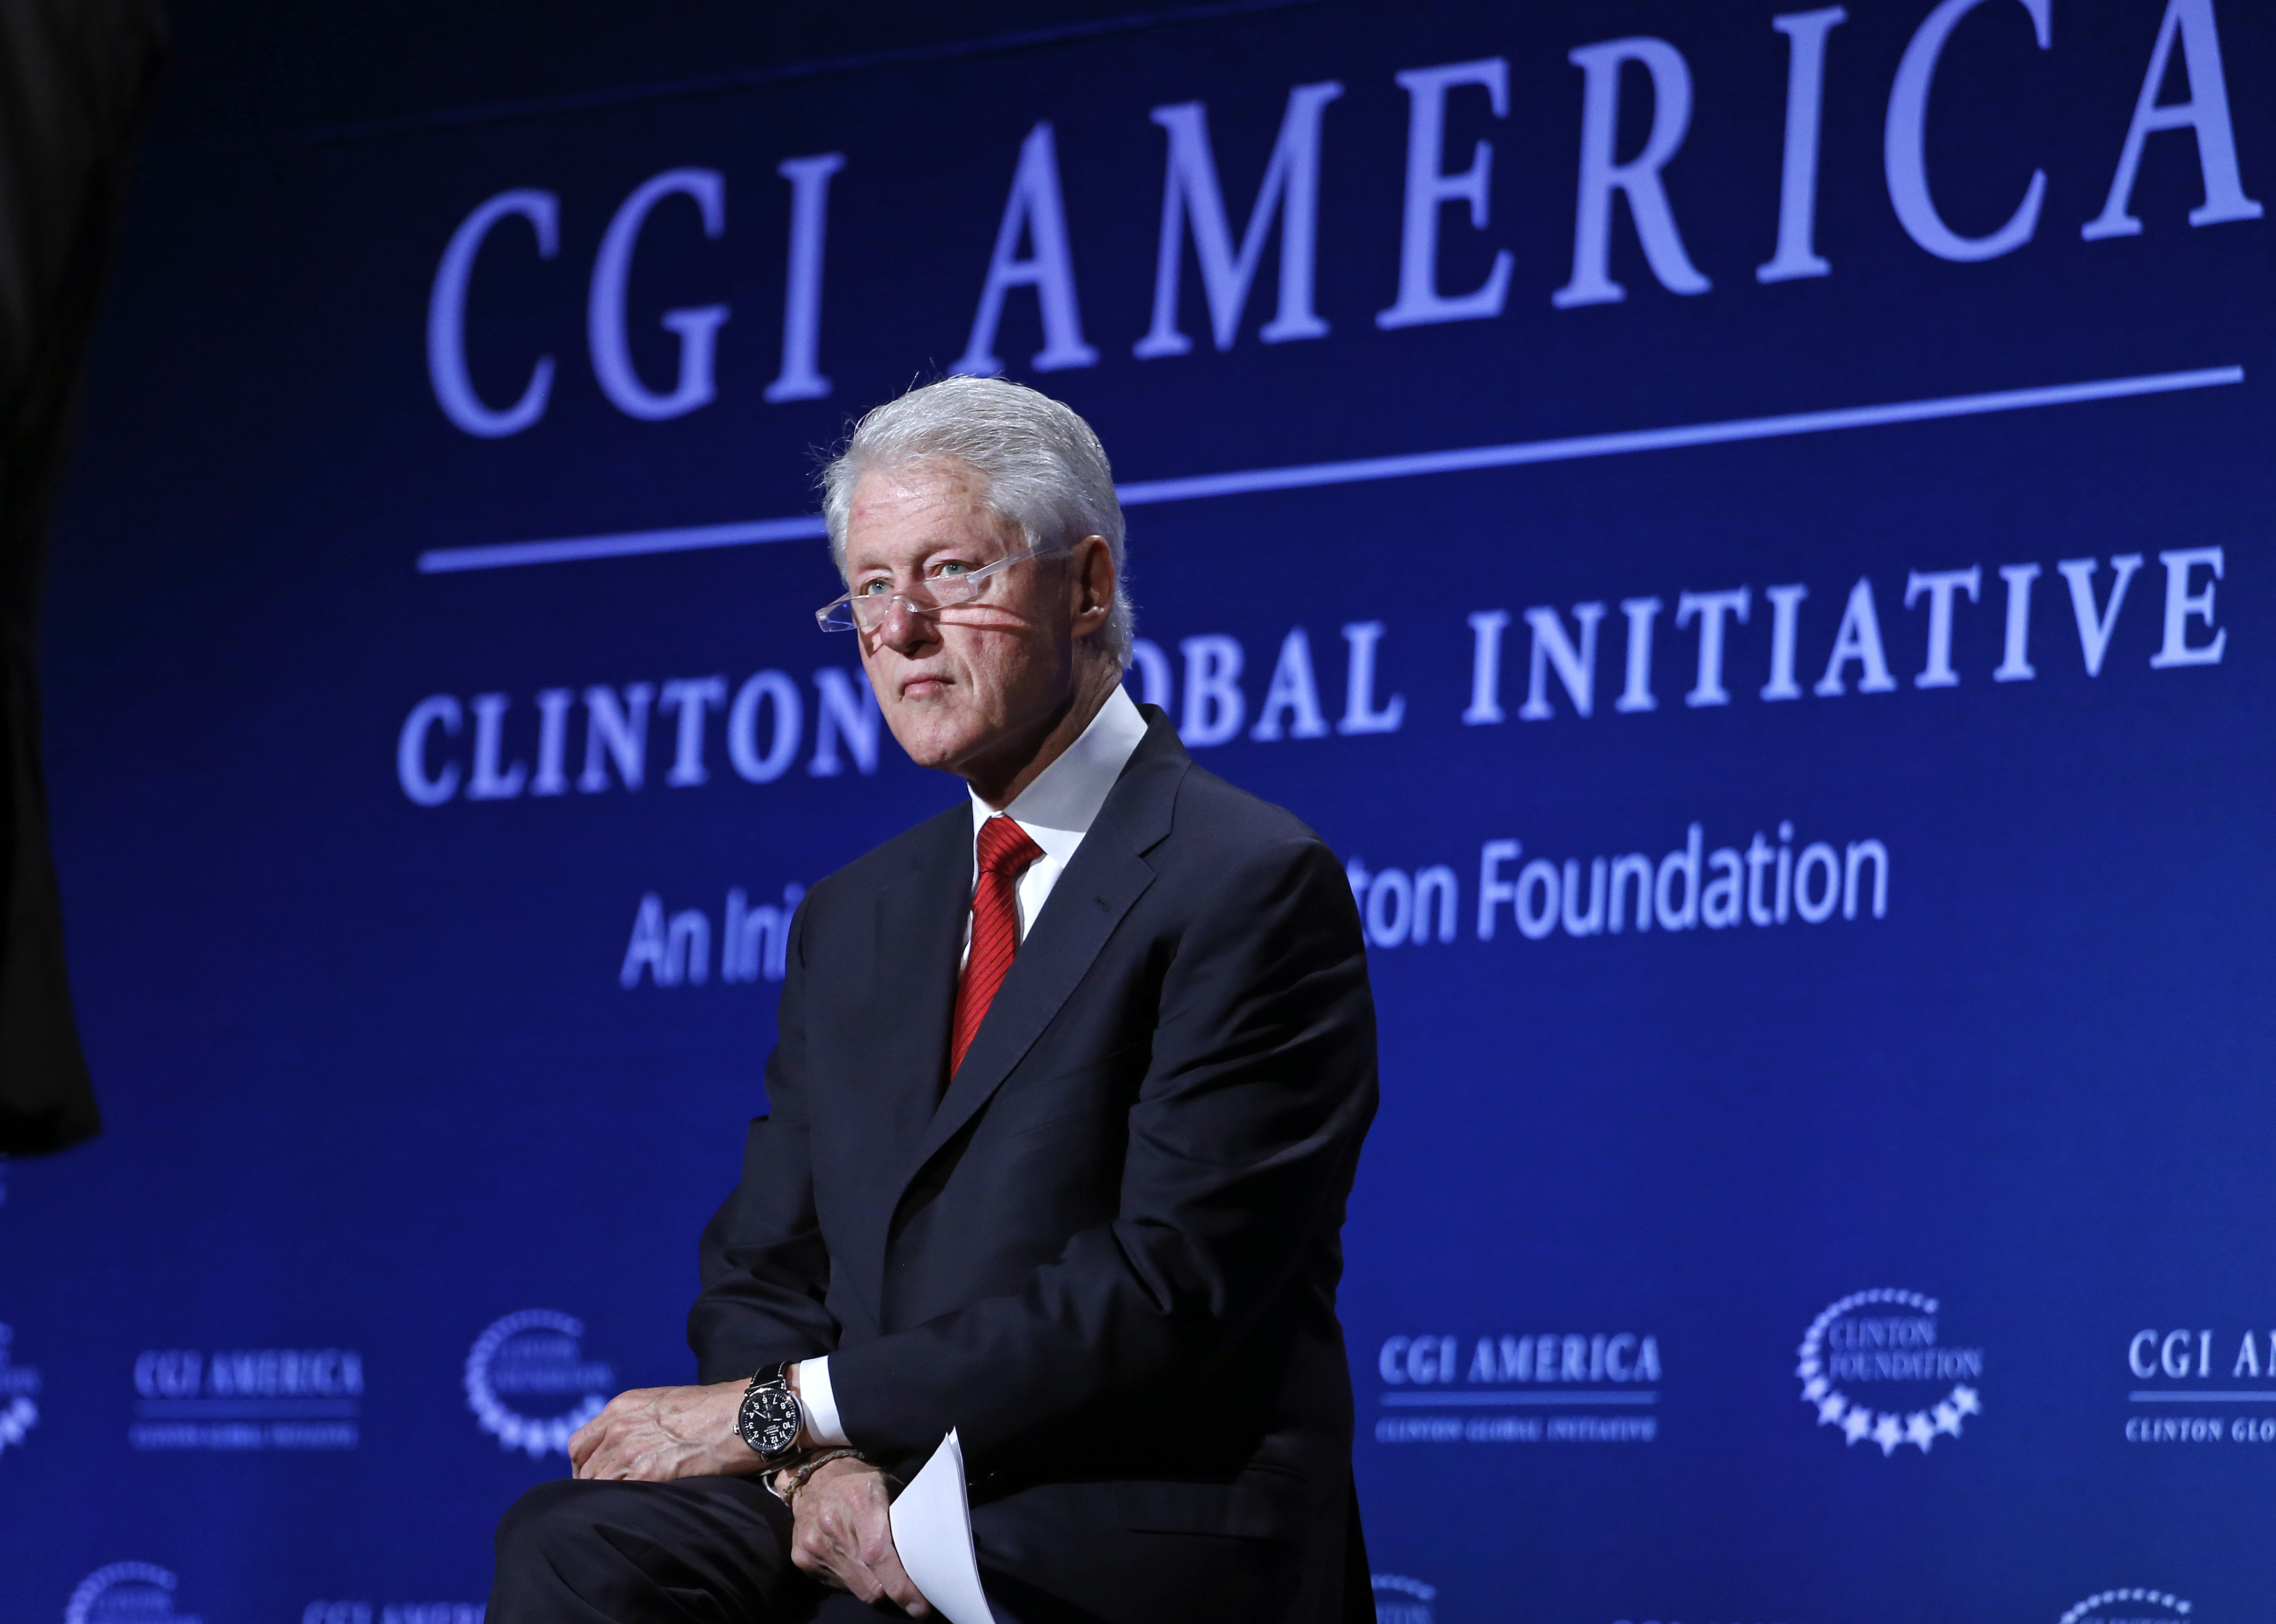 Former President Bill Clinton listens during a session of the annual gathering of the Clinton Global Initiative America in Denver on June 24, 2014